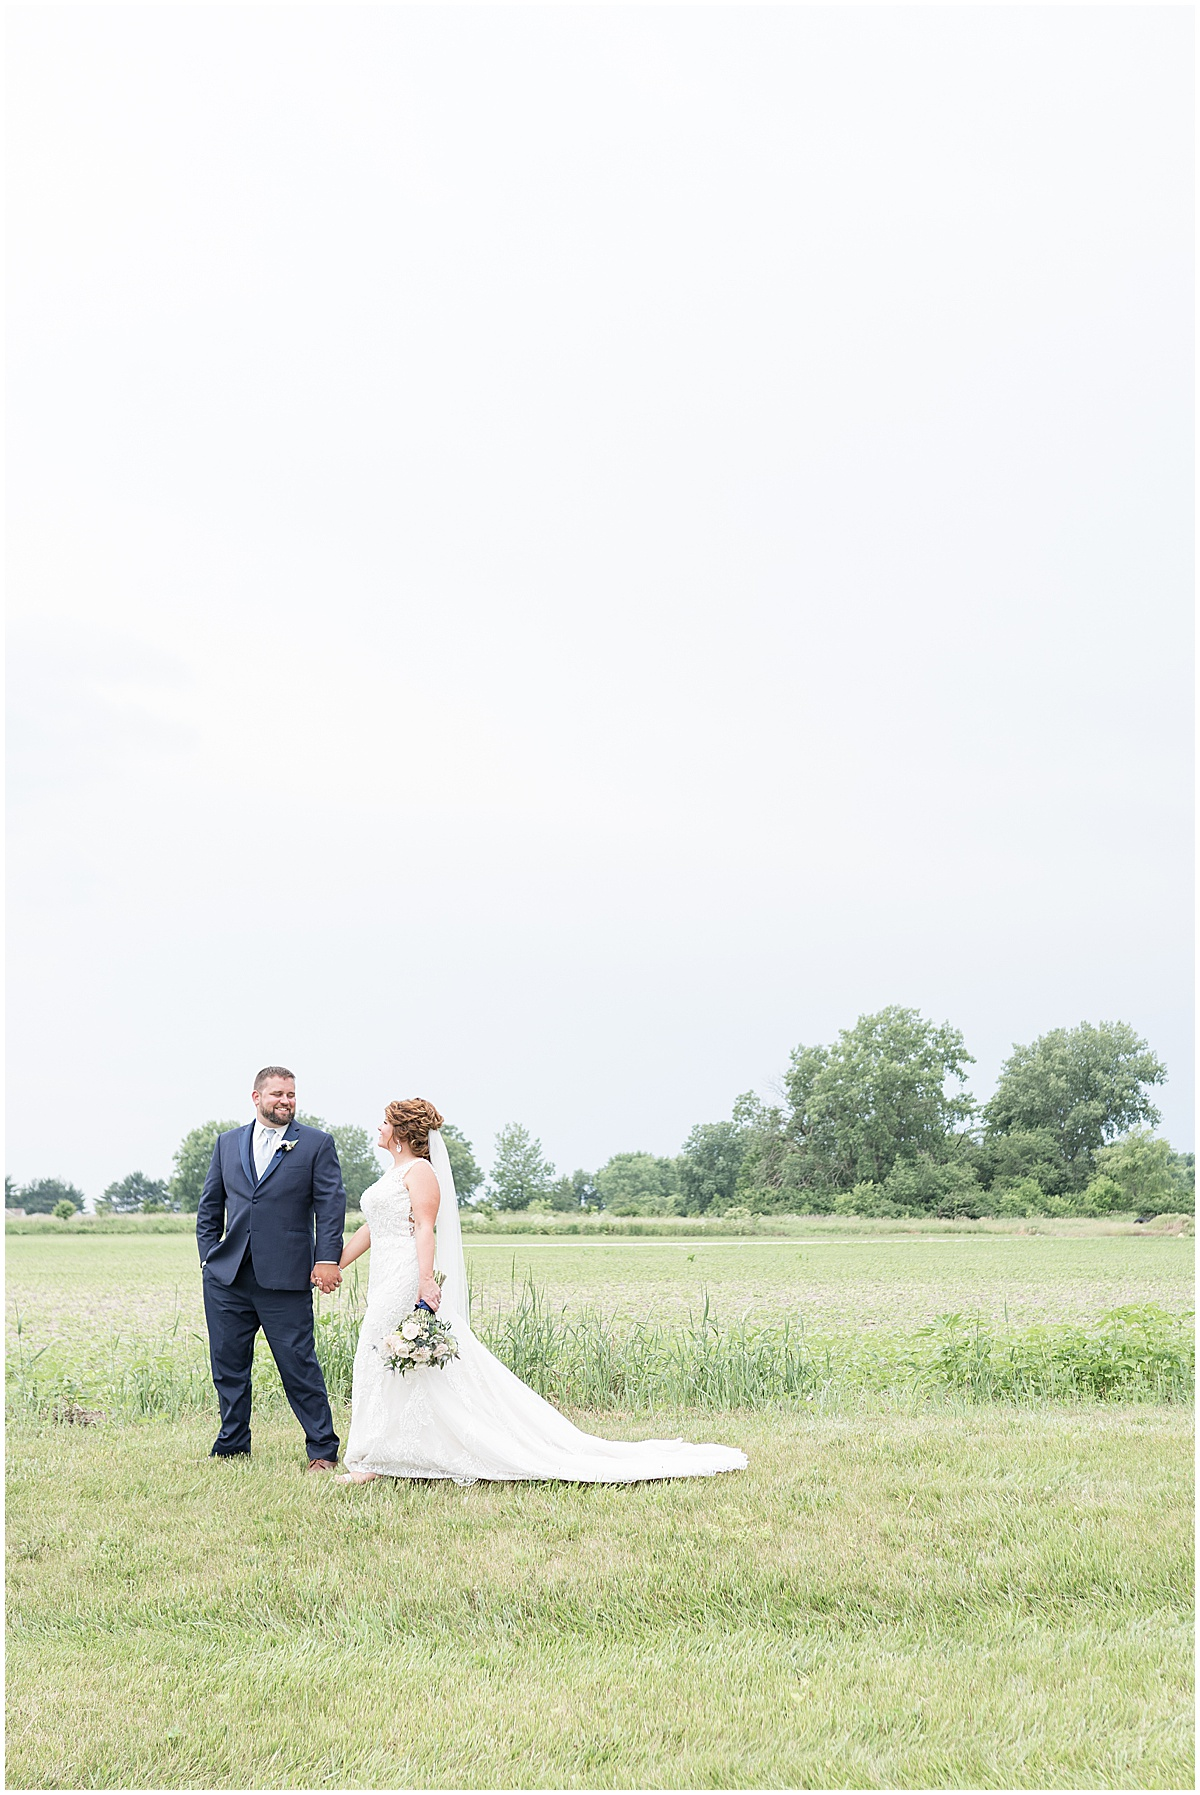 Bride and groom portrait at a wedding at The Brandywine in Monticello, Indiana